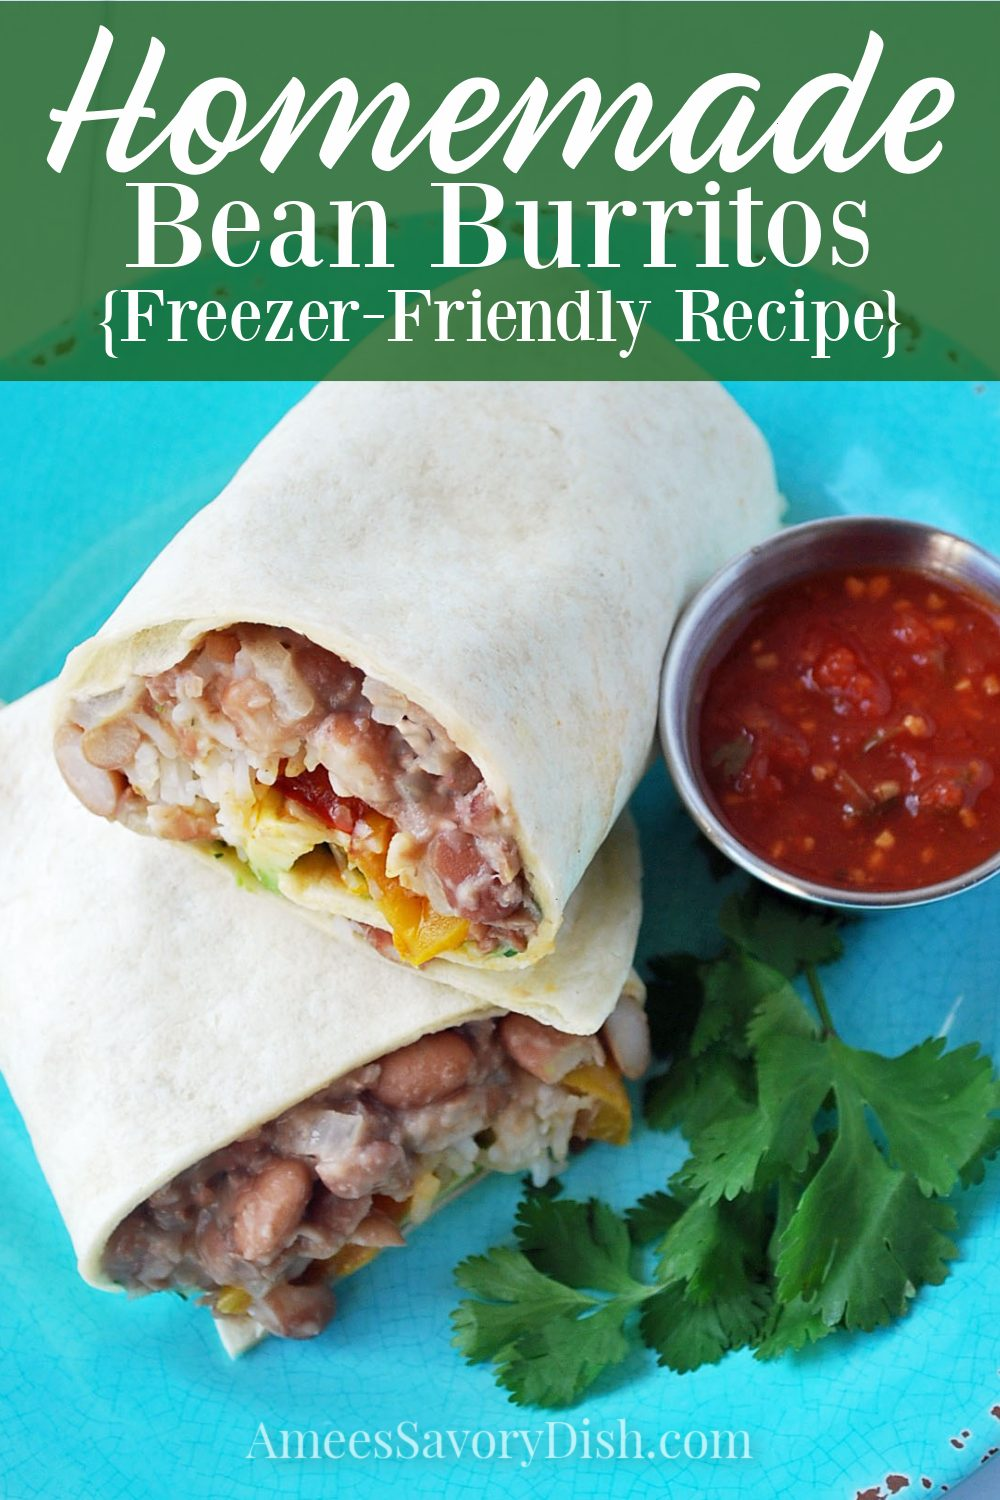 A delicious recipe for easy Mexican burritos made with homemade pinto beans. You can also freeze these burritos for a quick meal on-the-go. #beanburritos #easyburritos #freezerburritos #easyMexicanrecipes via @Ameessavorydish